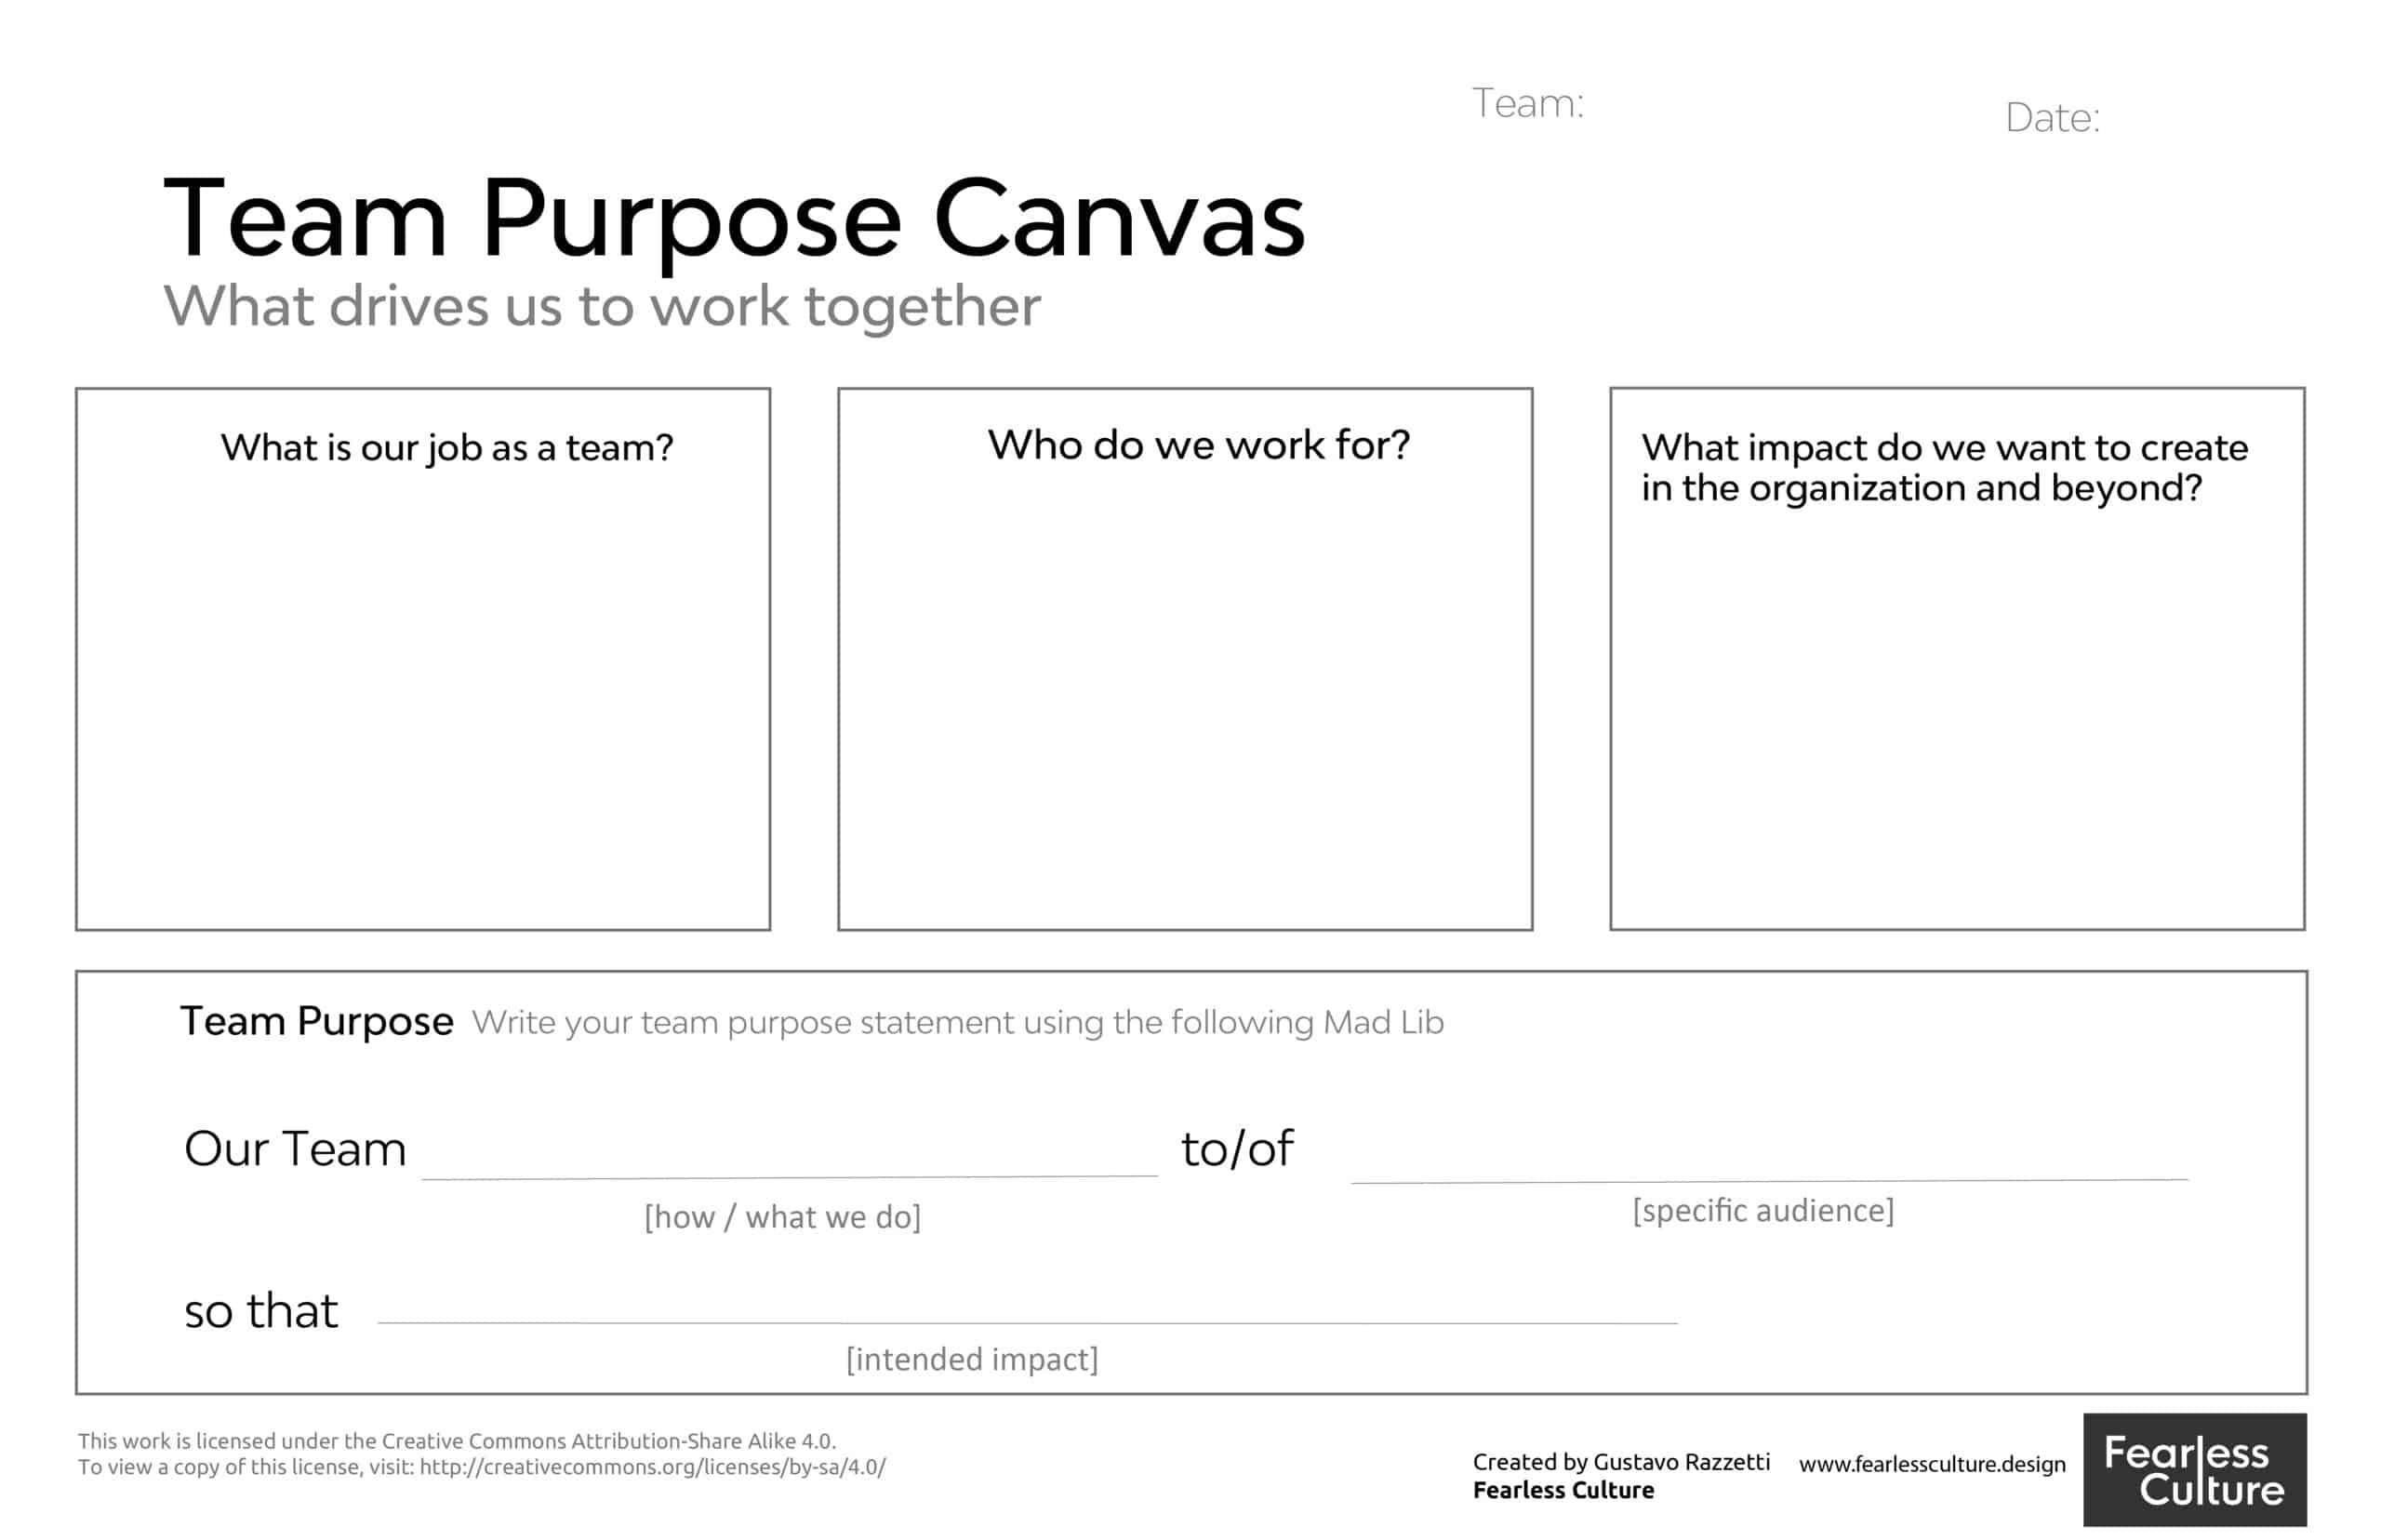 the team purpose canvas is a tool to define your team purpose and drive team alignment